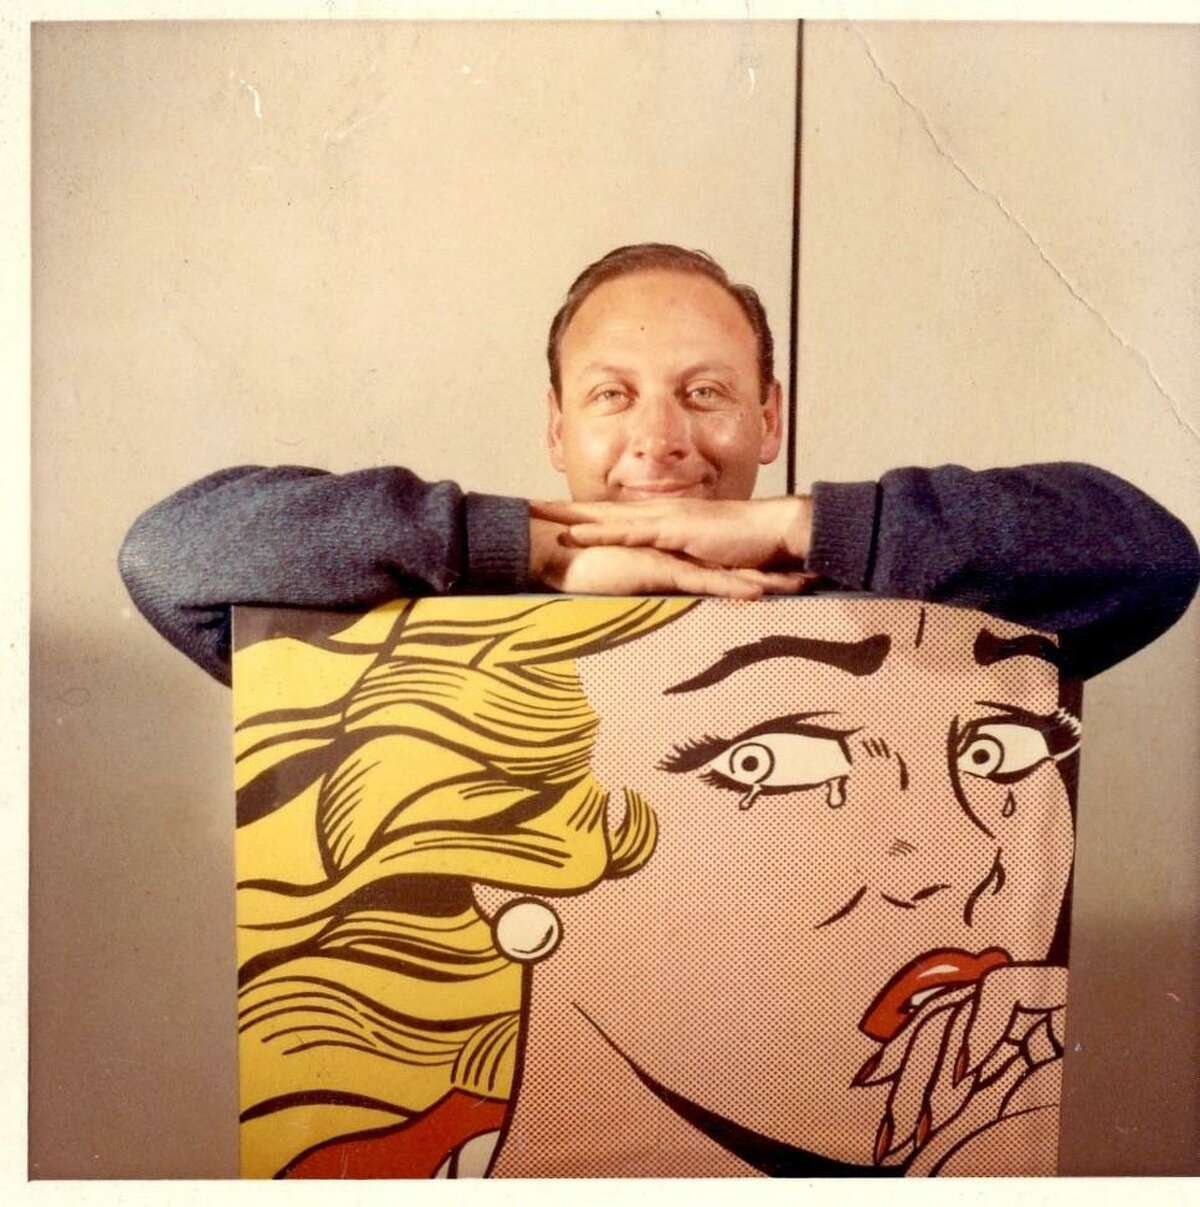 Ted Cohen with a reproduction of Crying Girl by Roy Lichtenstein.